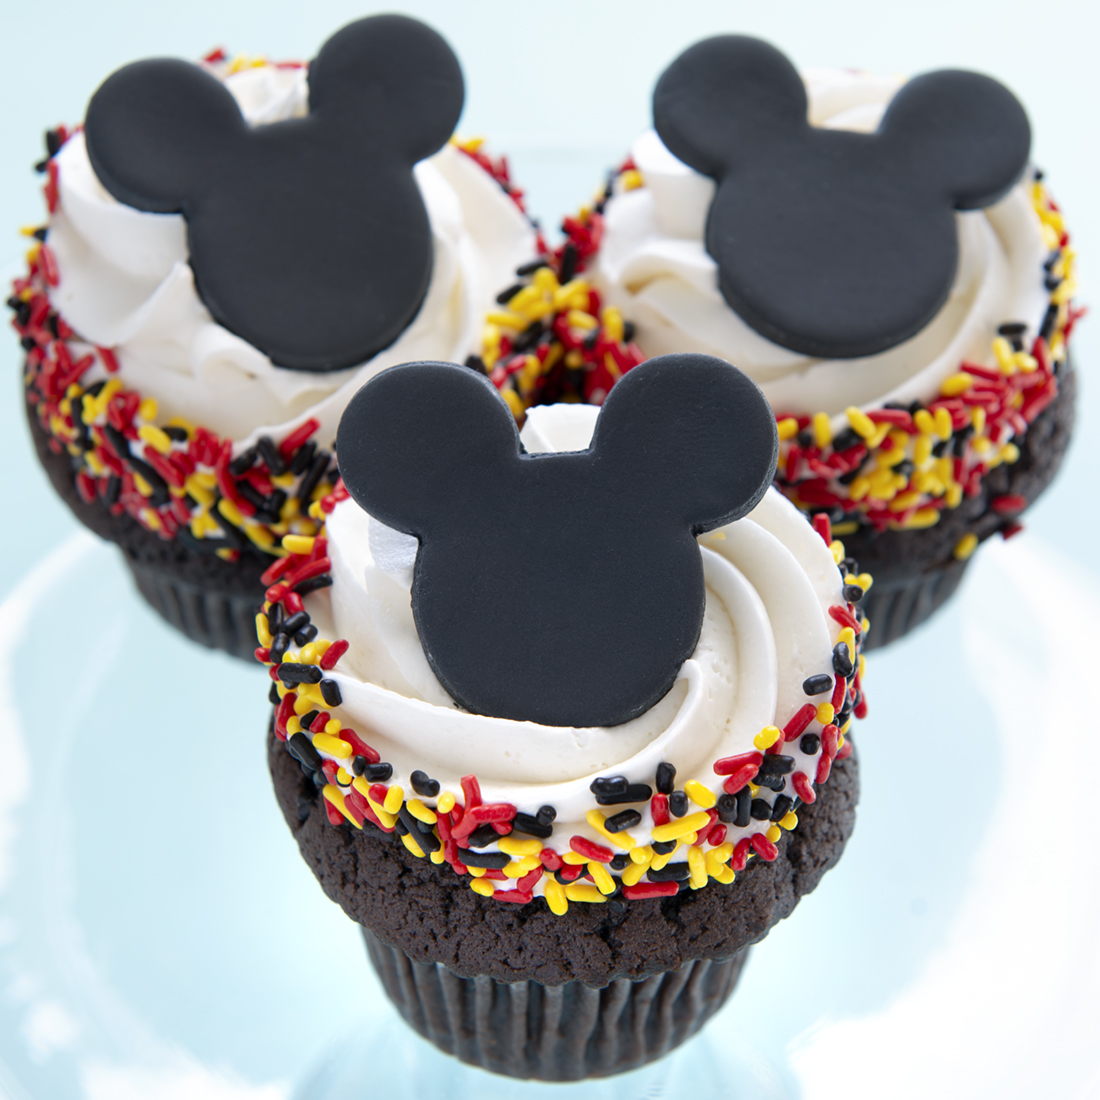 Mickey - Vanilla, chocolate, lemon, almond or strawberry cupcake, vanilla buttercream frosting, red and yellow sprinkles, black fondant mickey silhouette. $4.00 each, minimum of one dozen.